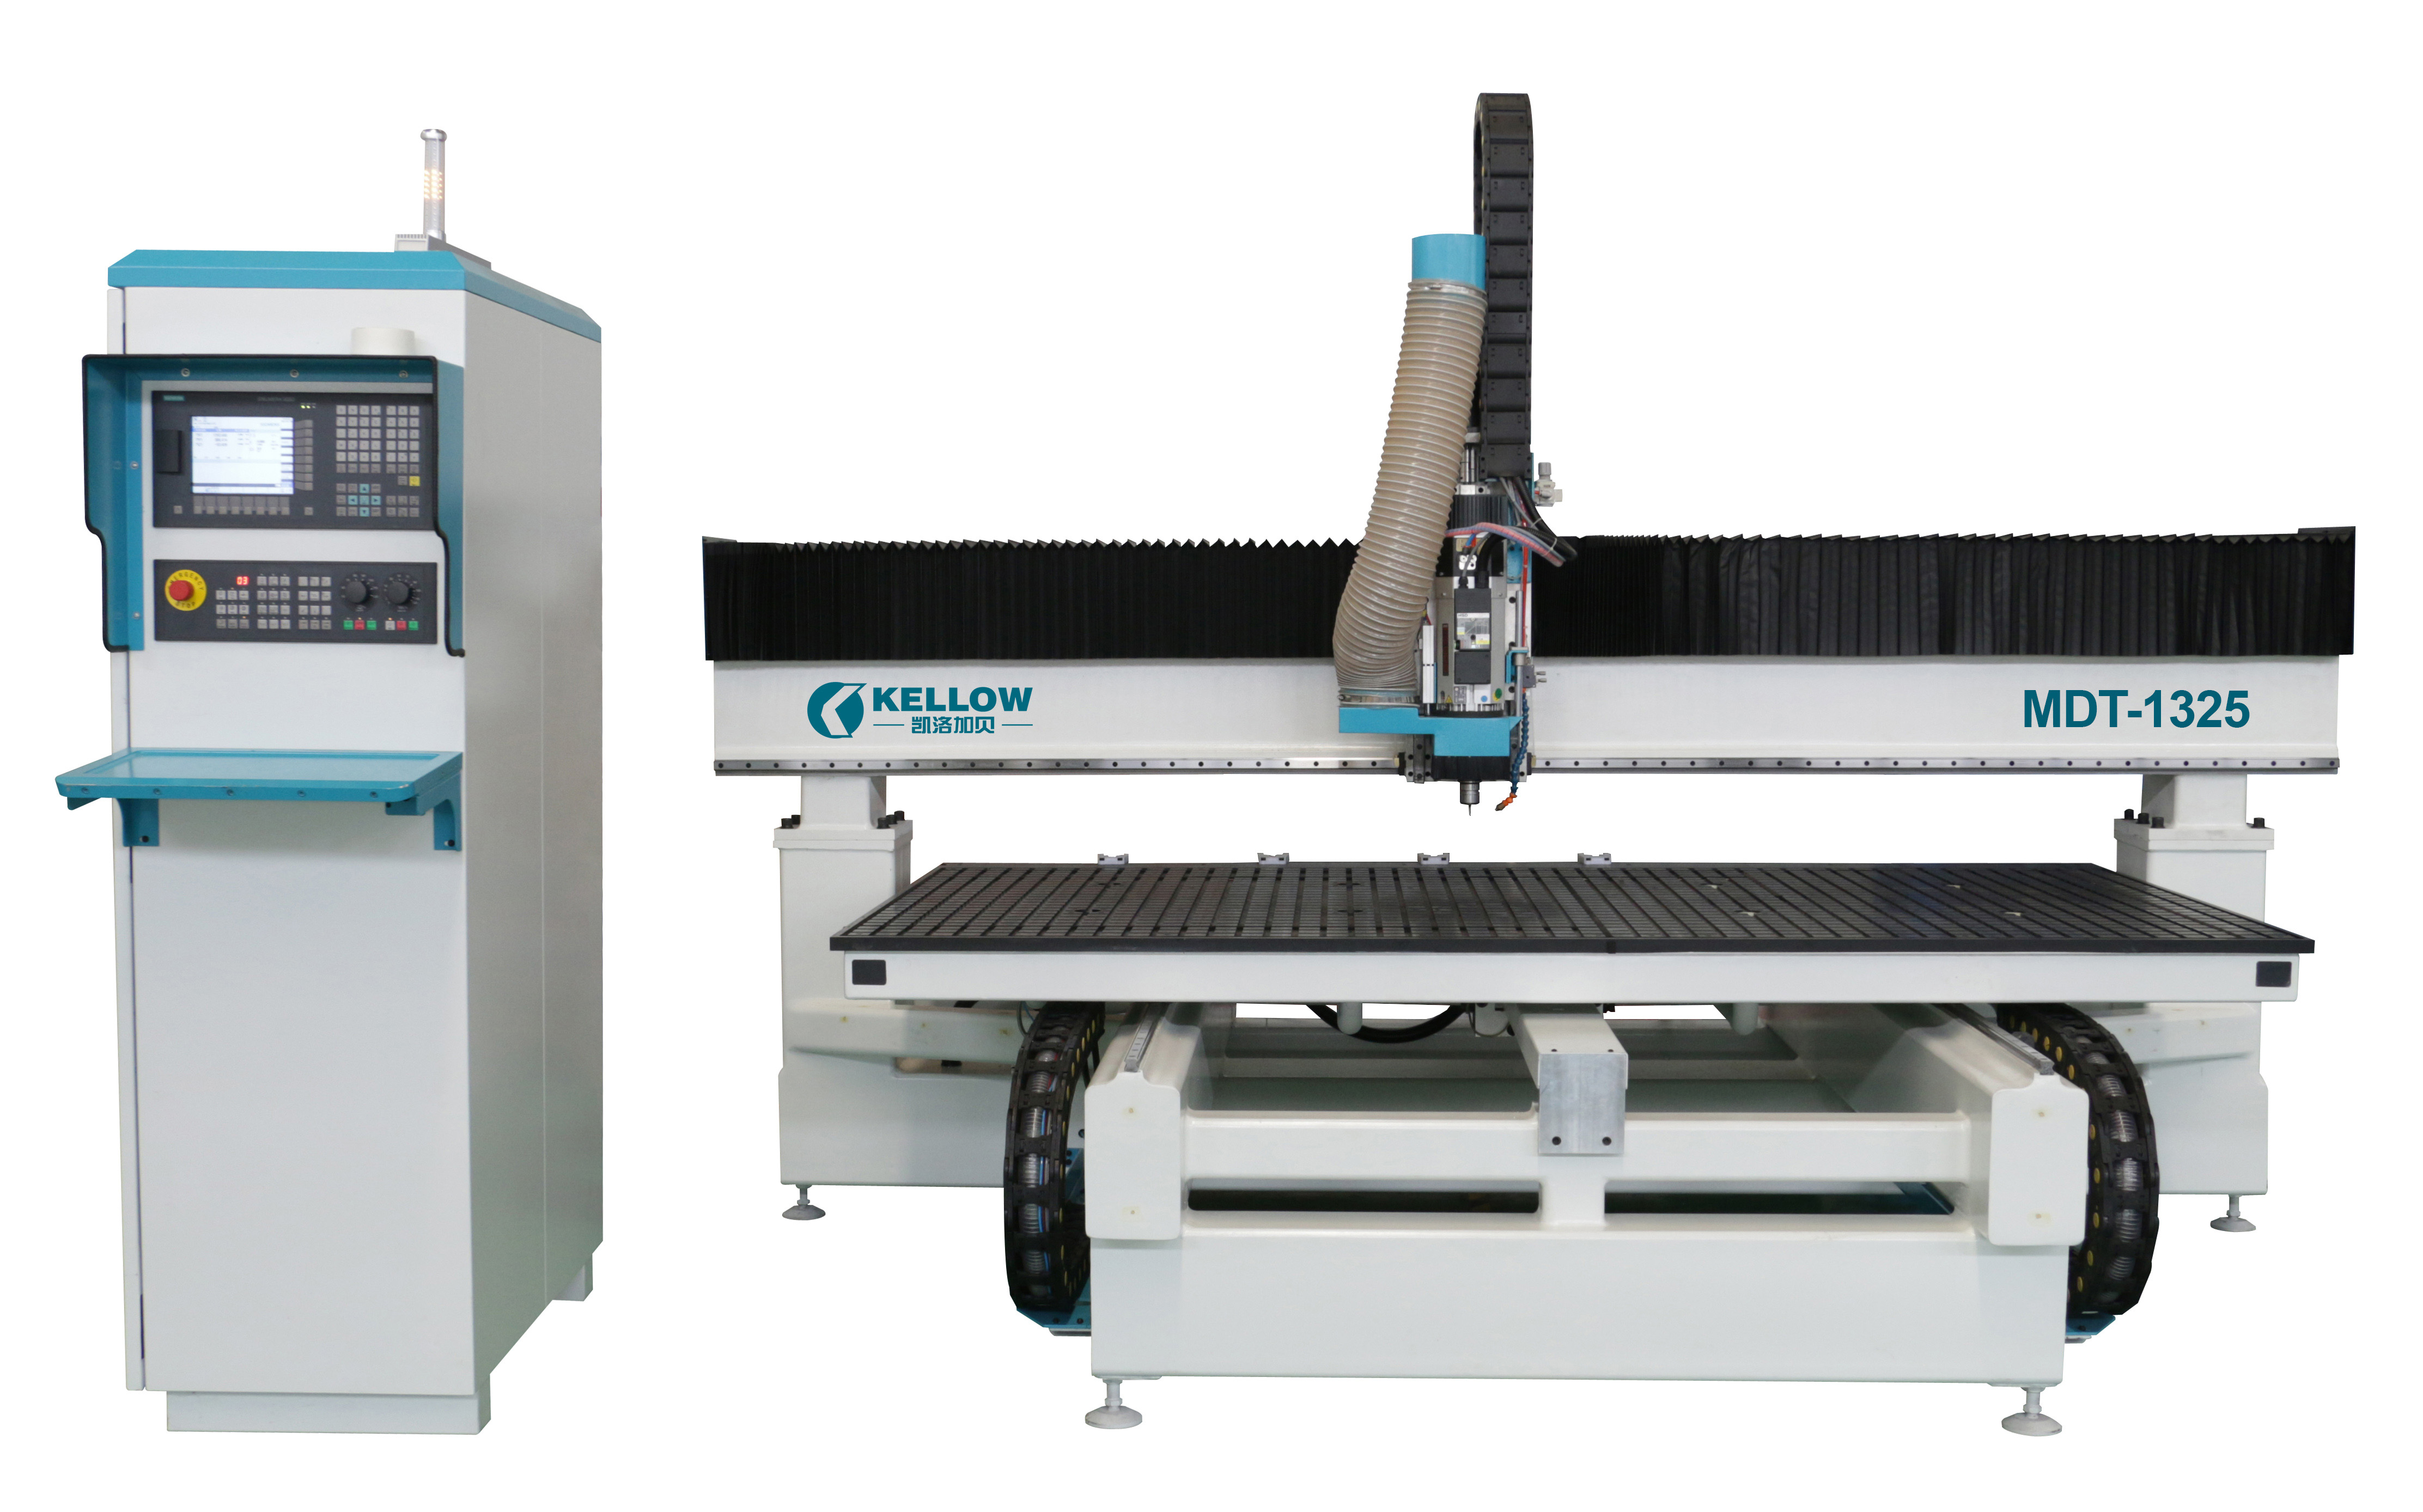 MDT-1325 Moveable flaform processing center